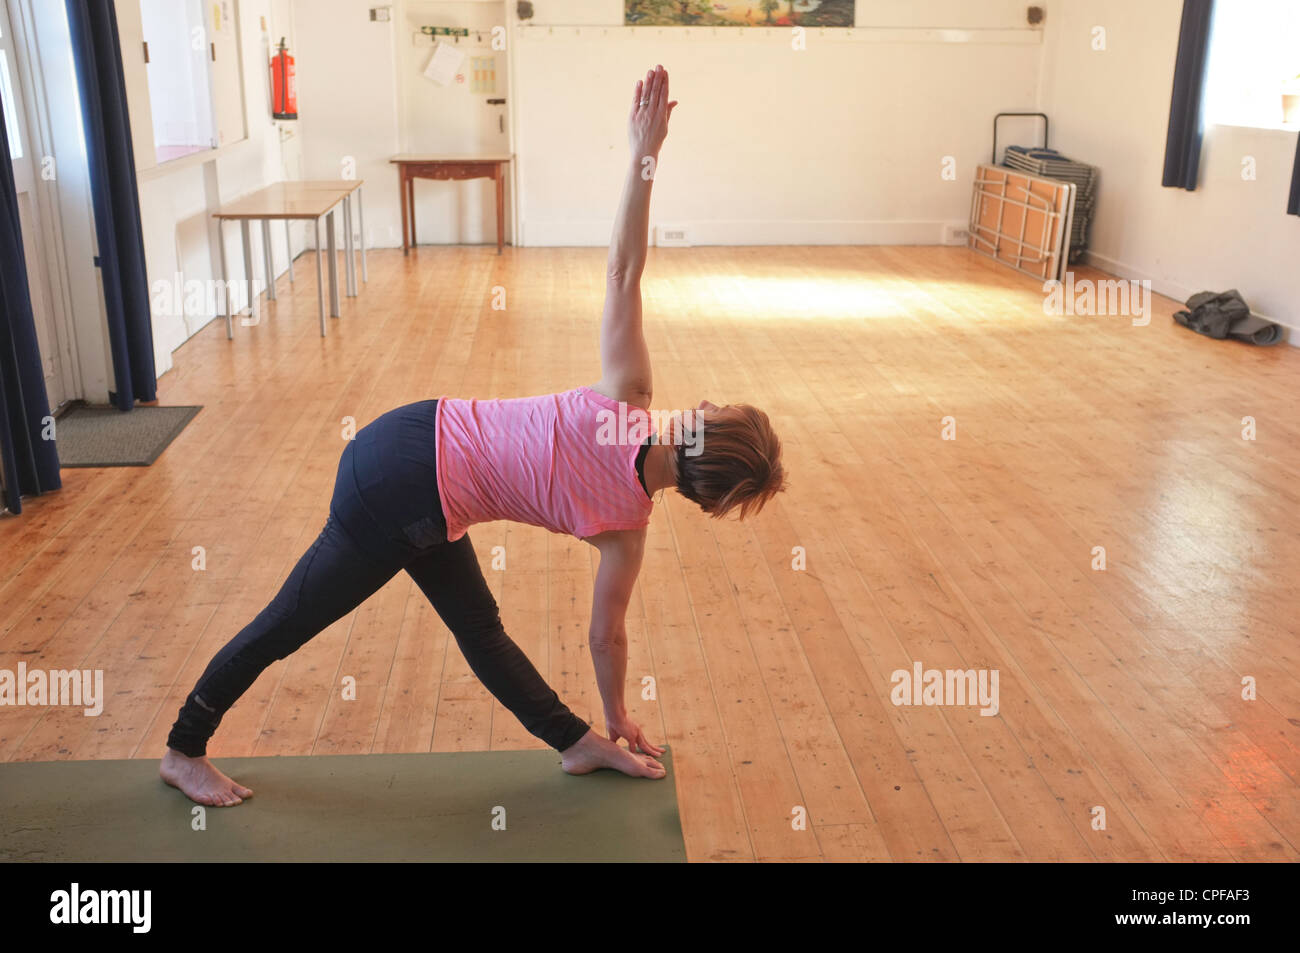 A woman in her mid forties warms up before a yoga class held in a village hall in Cornwall, UK - Stock Image